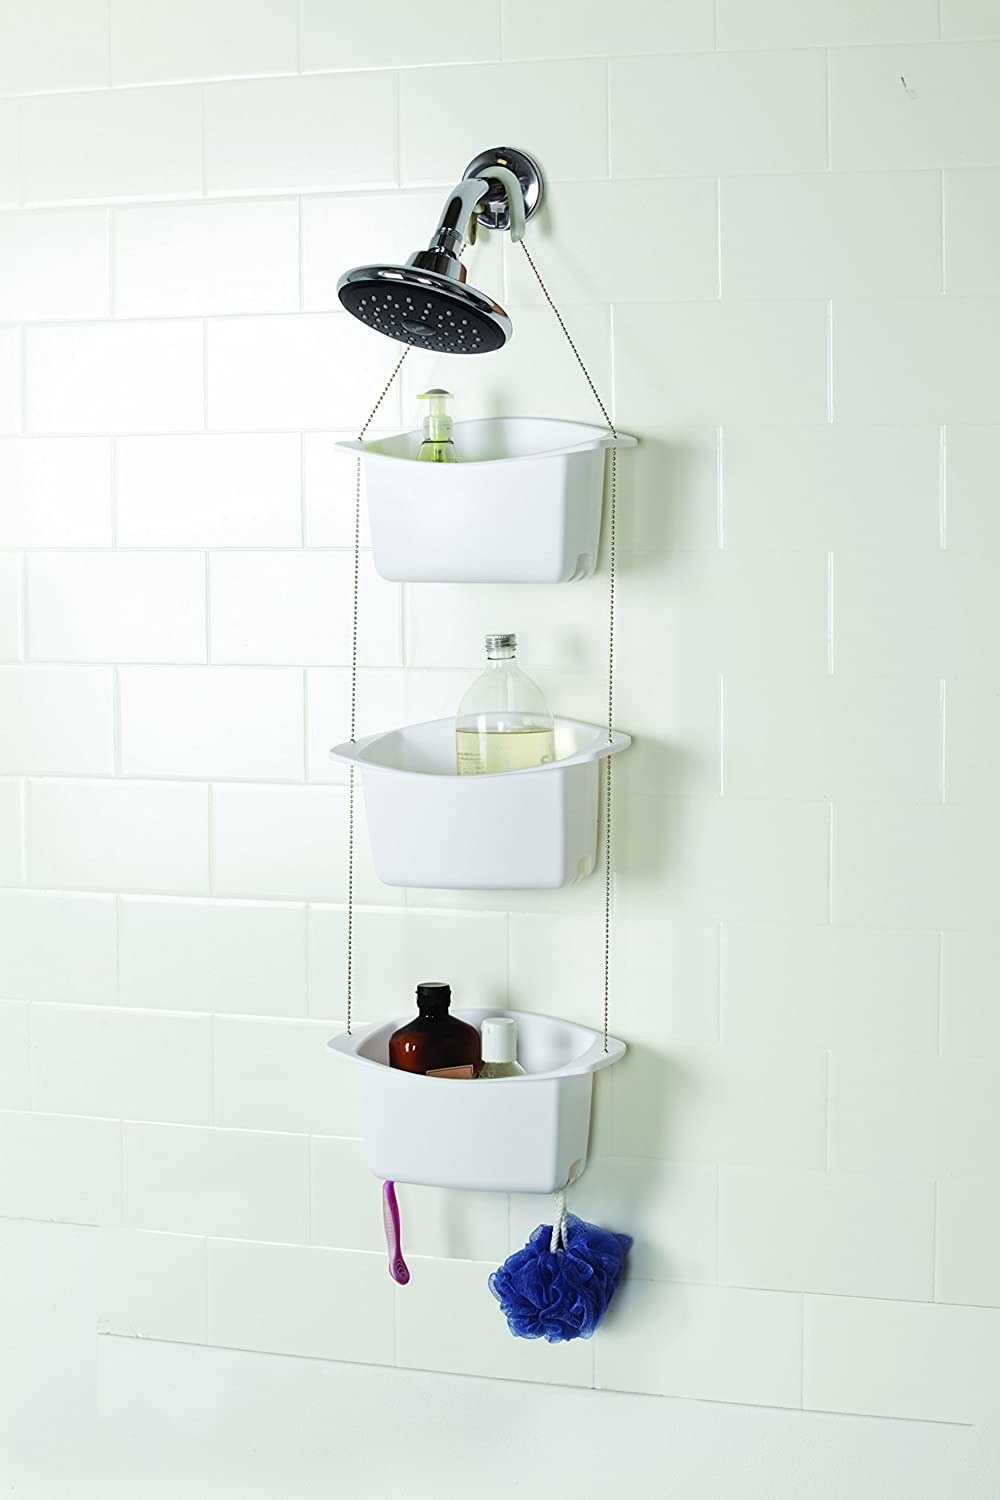 A three-layer shower caddy hanging from a showerhead.